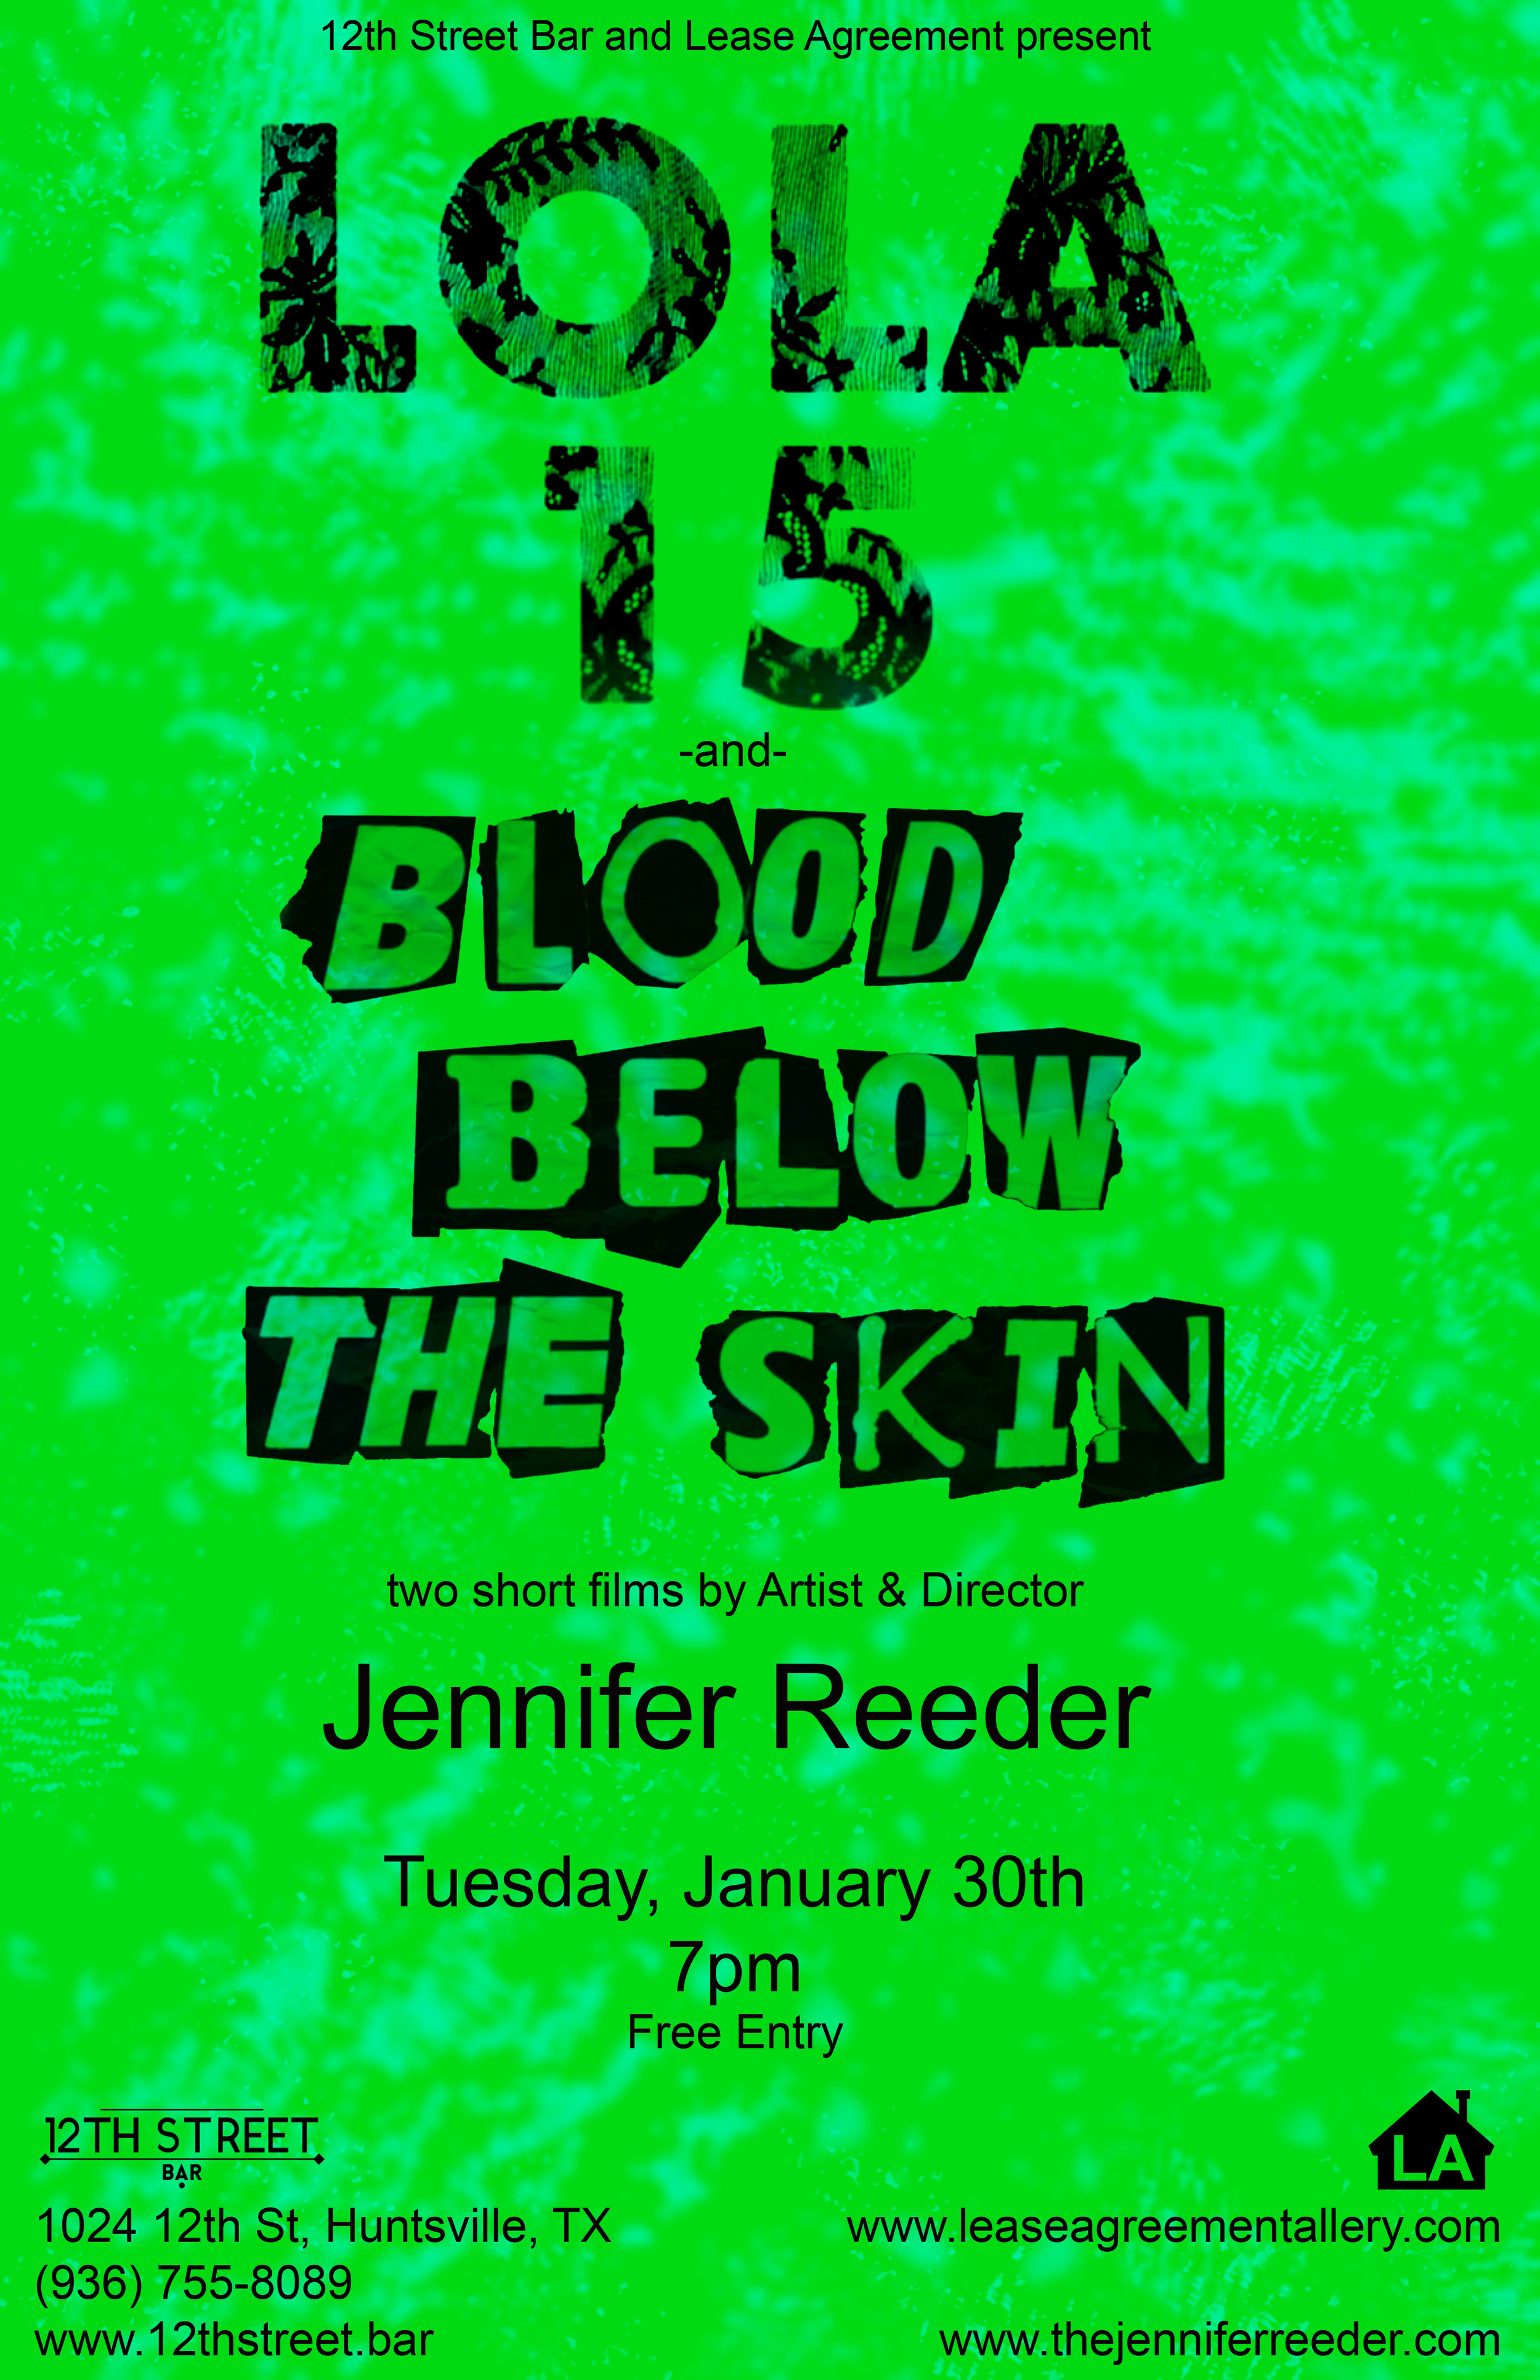 """Jennifer Reeder - The 12th Street Bar and Lease Agreement present two short films,Lola, 15(5 min, 2017) and Blood Below the Skin(32 min, 2015) by artist and director Jennifer Reeder.Jennifer Reeder constructs personal films about relationships, trauma and coping. Her award-winning narratives are innovative and borrow from a range of forms including after school specials, amateur music videos and magical realism. These films have shown consistently around the world, including the Sundance Film Festival, The Berlin Film Festival, The Venice Biennale and The Whitney Biennial.She recently founded a social justice initiative called TRACERS BOOK CLUB which has been featured recently at the Museum of Contemporary Art in Chicago and won a Propeller Fund Grant for a year of radical programming around the theme of """"women's work.""""Jennifer Reeder received an MFA from The School of the Art Institute of Chicago. She is currently an Associate Professor in Moving Image and the Head of the Art Department in the School of Art and Art History at the University of Illinois at Chicago. She lives in Indiana with her three young children.More about Reeder and her work can be found on her website:www.thejenniferreeder.comJanuary 30, 20187pmEntry is free21+12th Street Bar1024 12th St.Huntsville, Texas 77340www.12thstreet.barwww.leaseagreementgallery.com"""